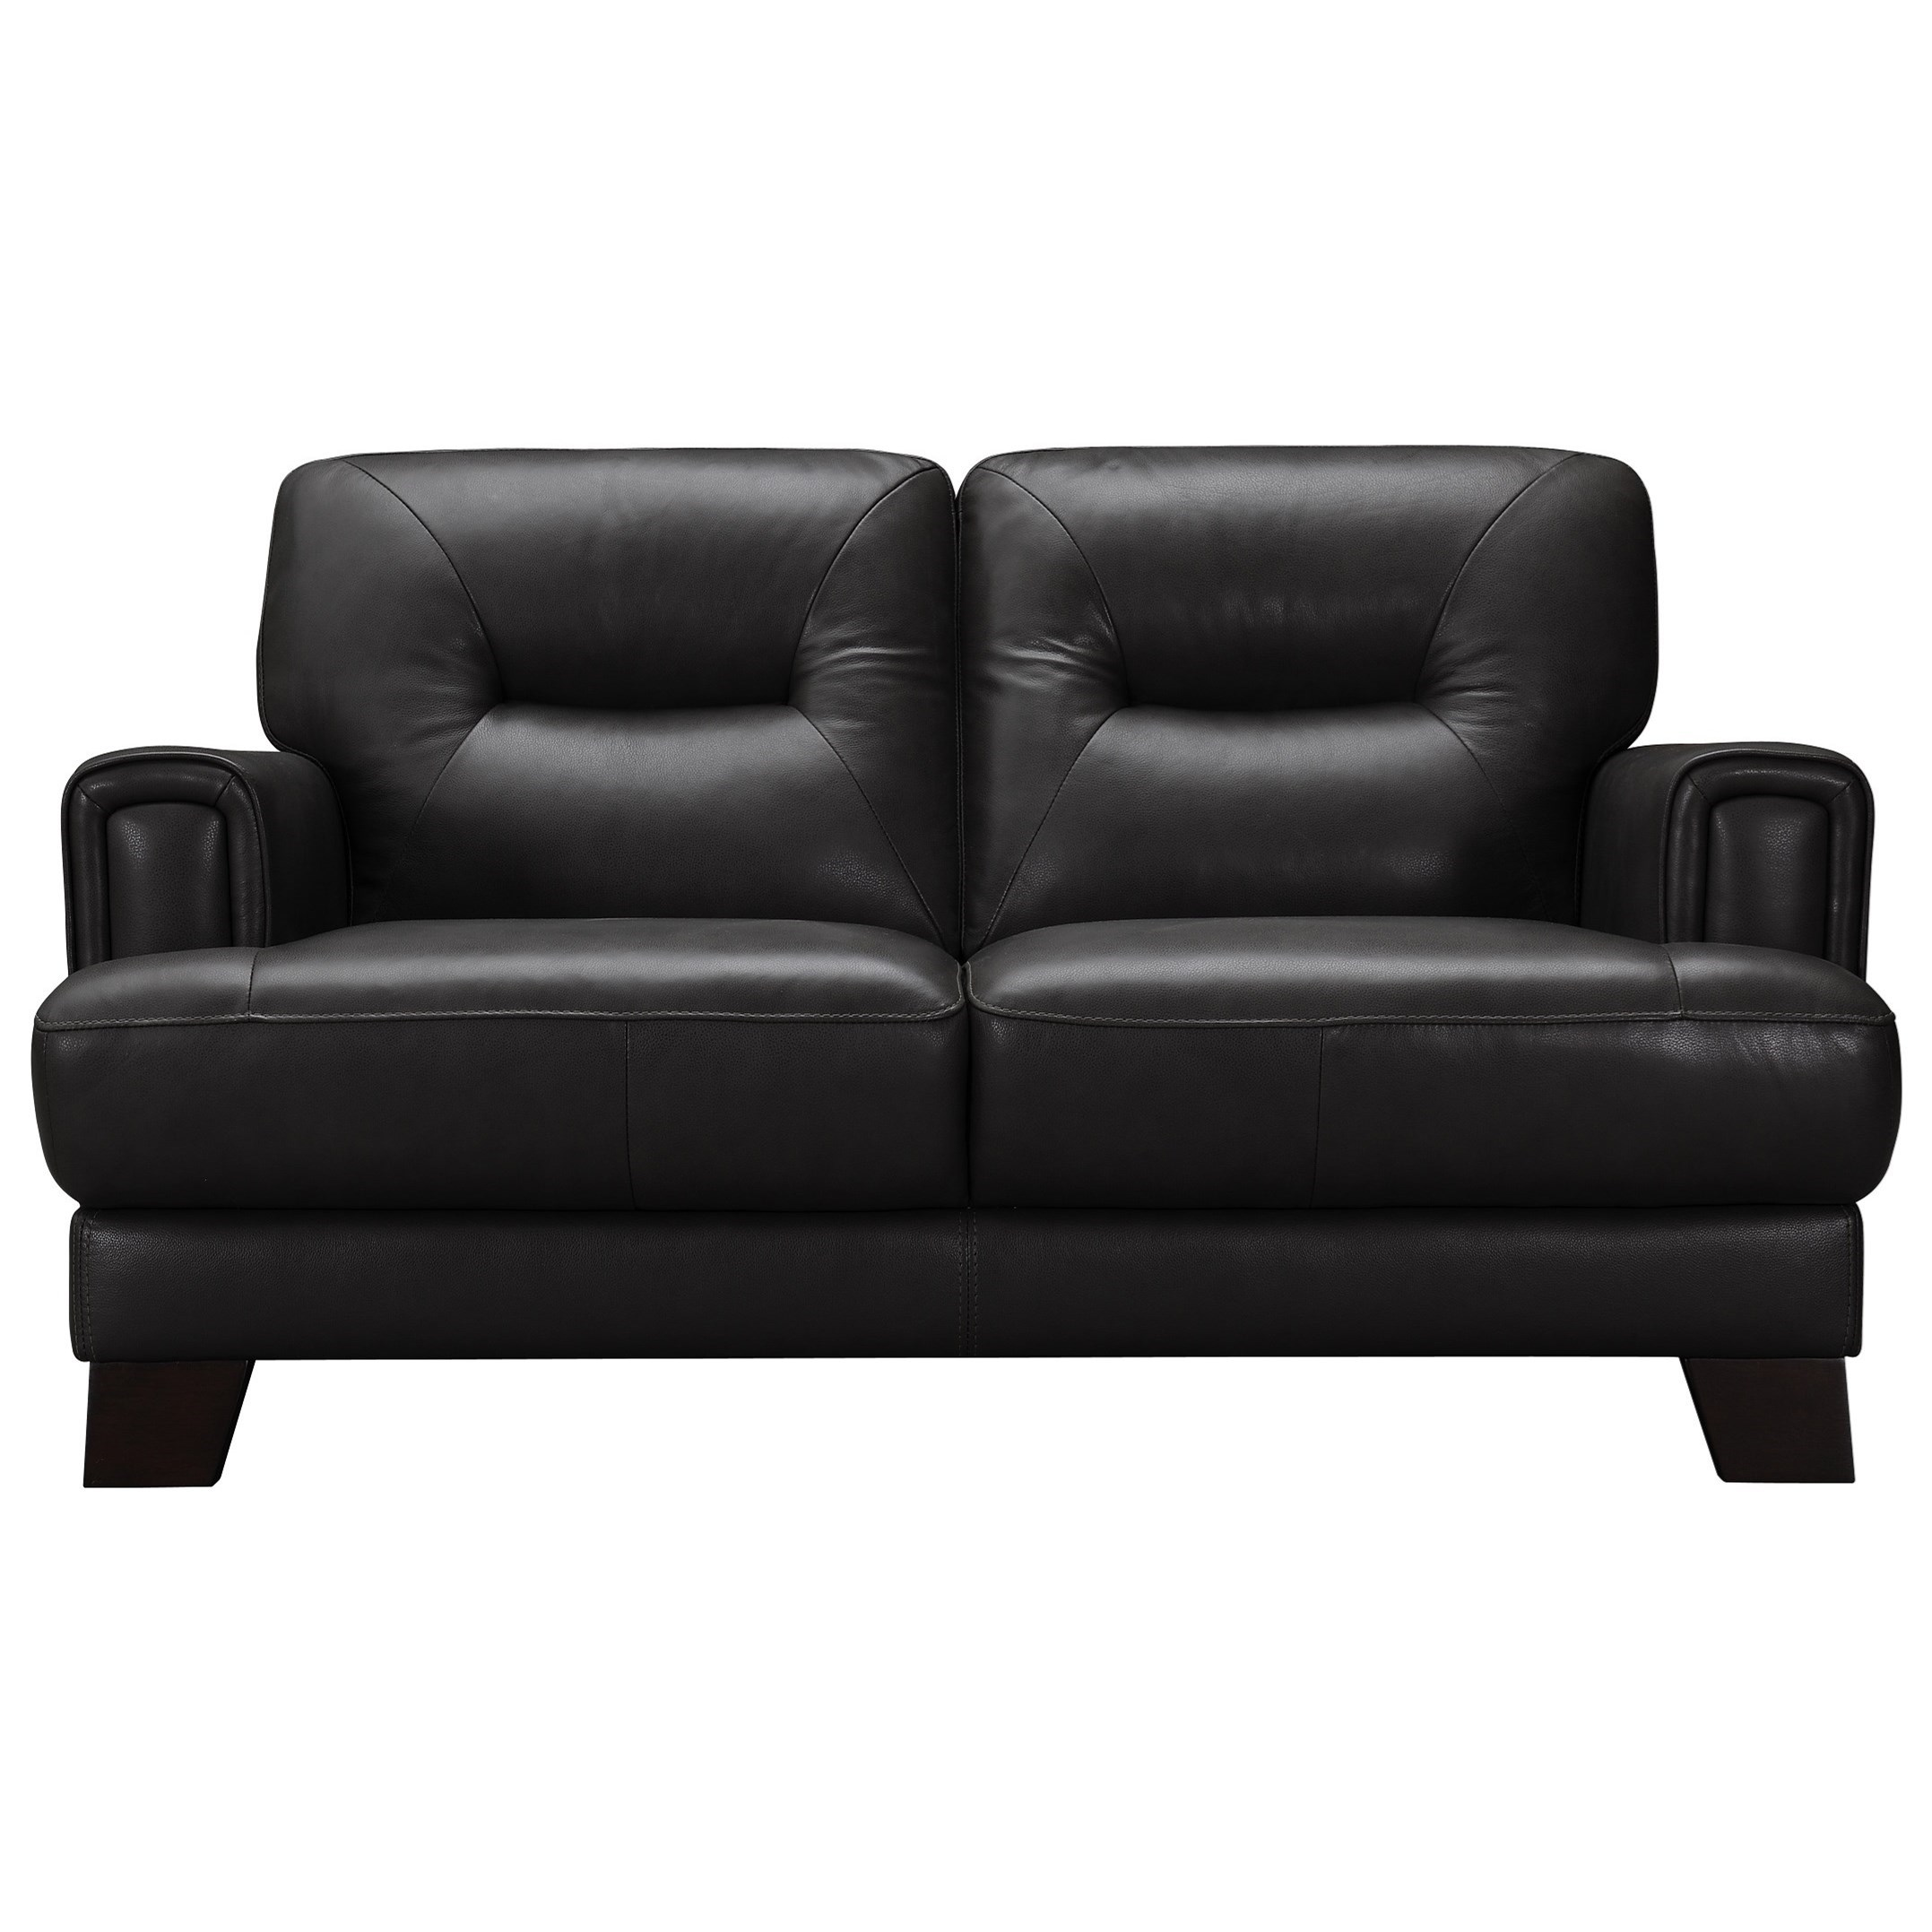 31978 Loveseat by Violino at Furniture Superstore - Rochester, MN